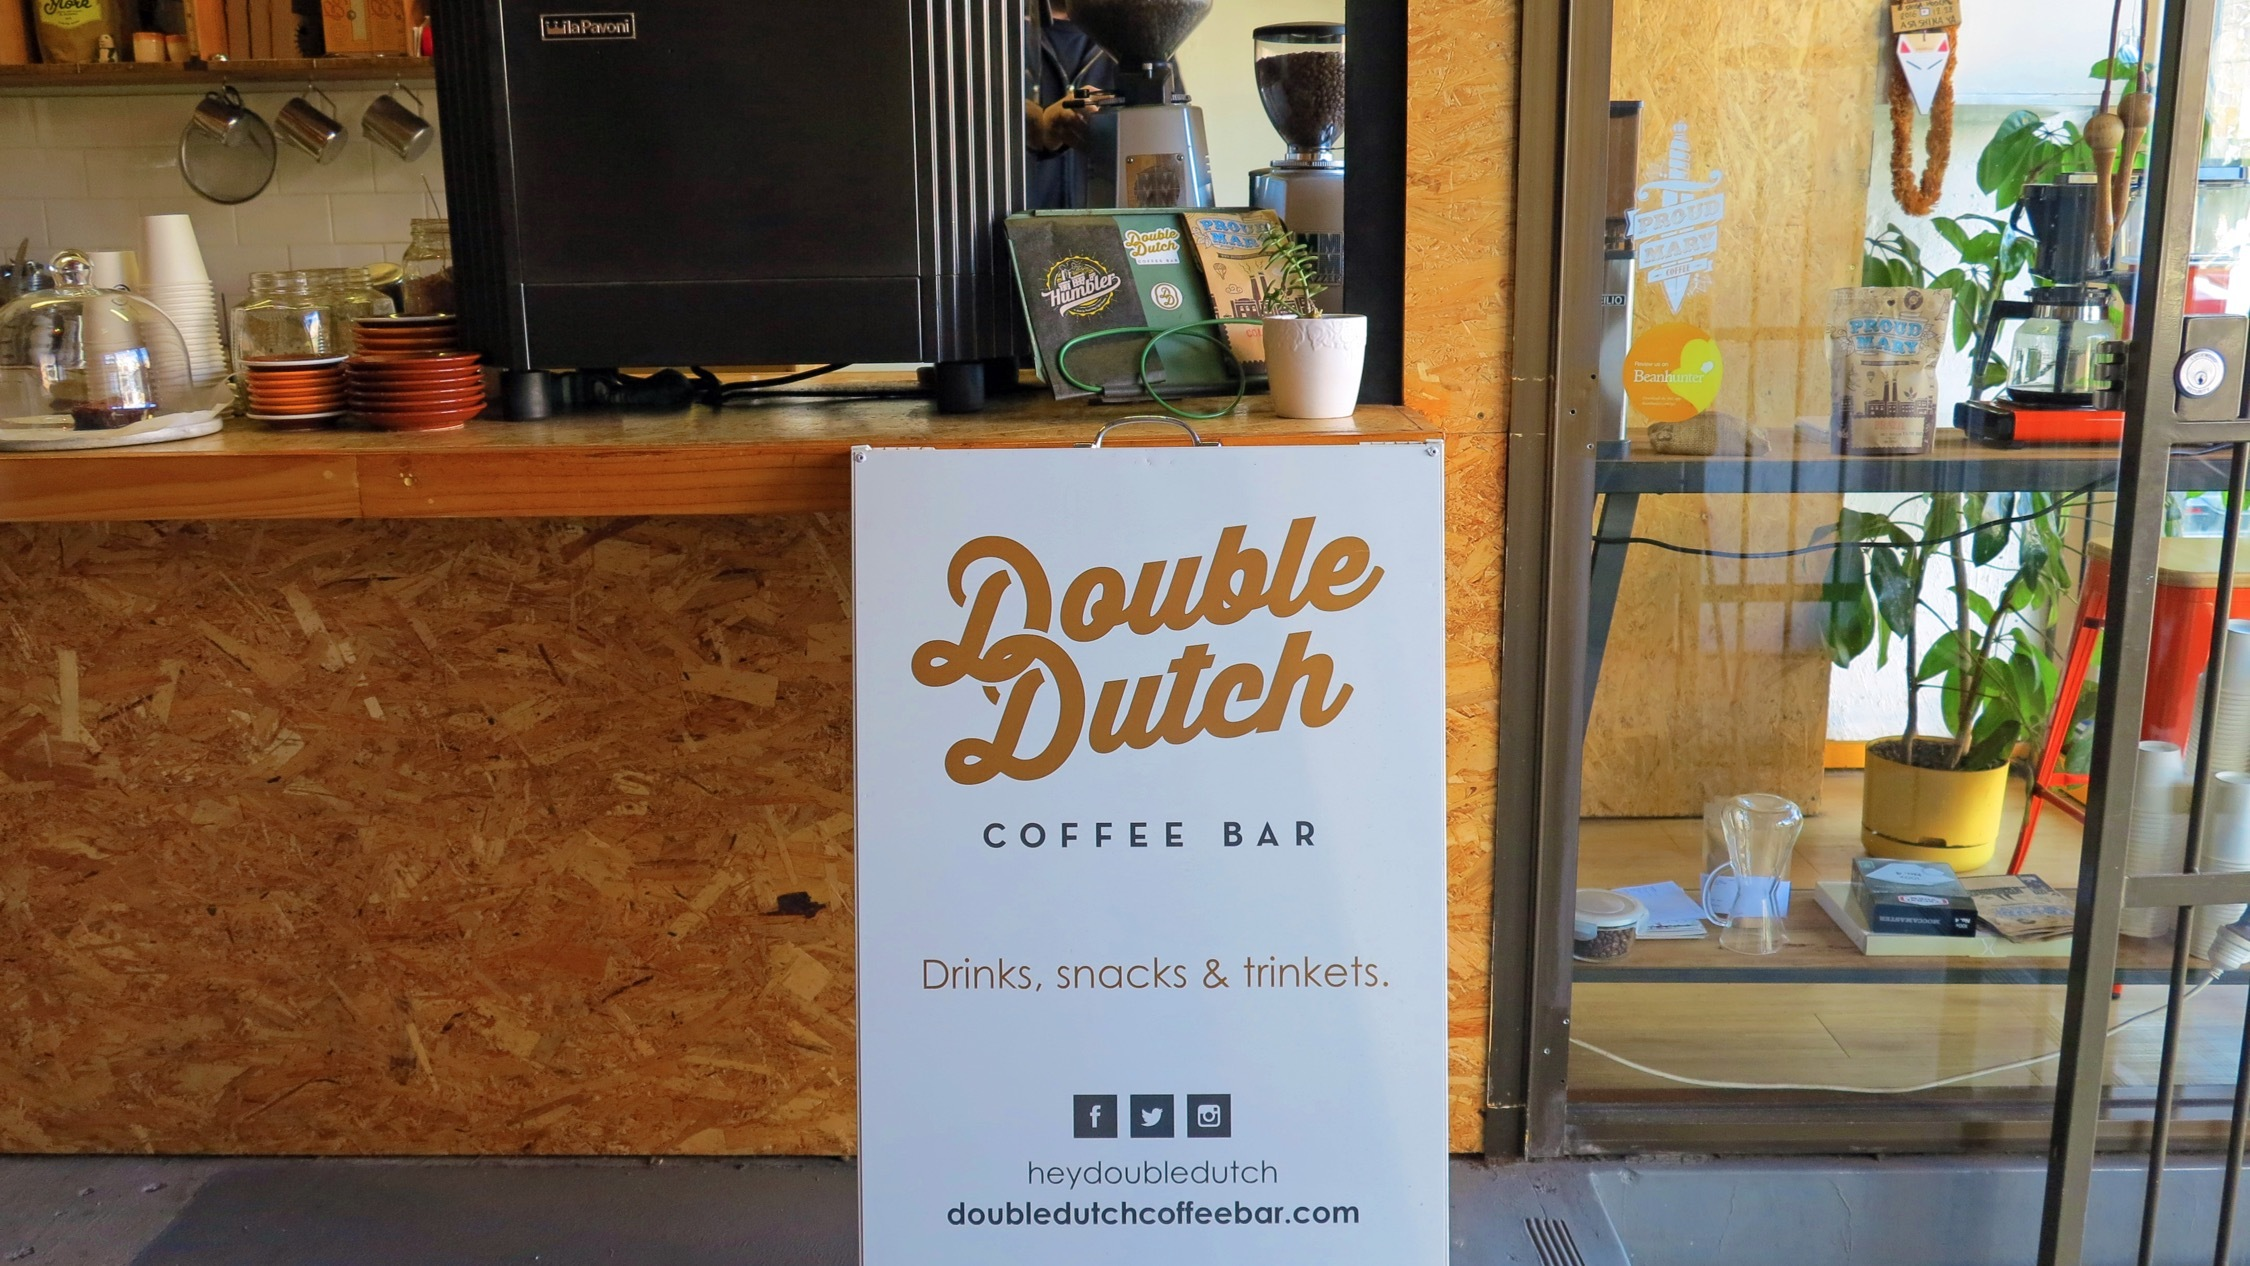 Sign at Double Dutch Coffee Bar